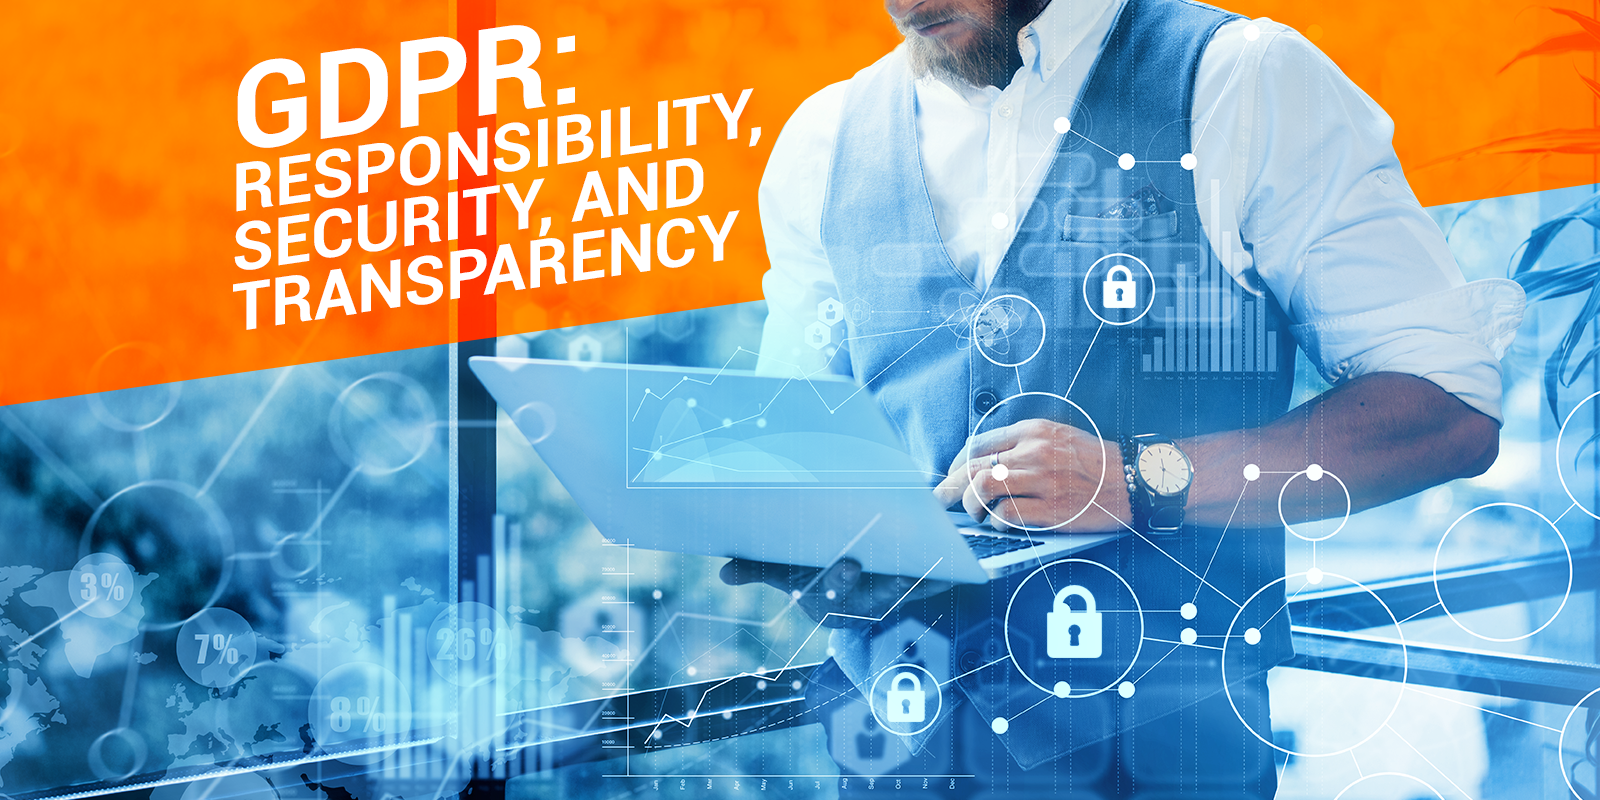 GDPR: Responsibility, Security, and Transparency